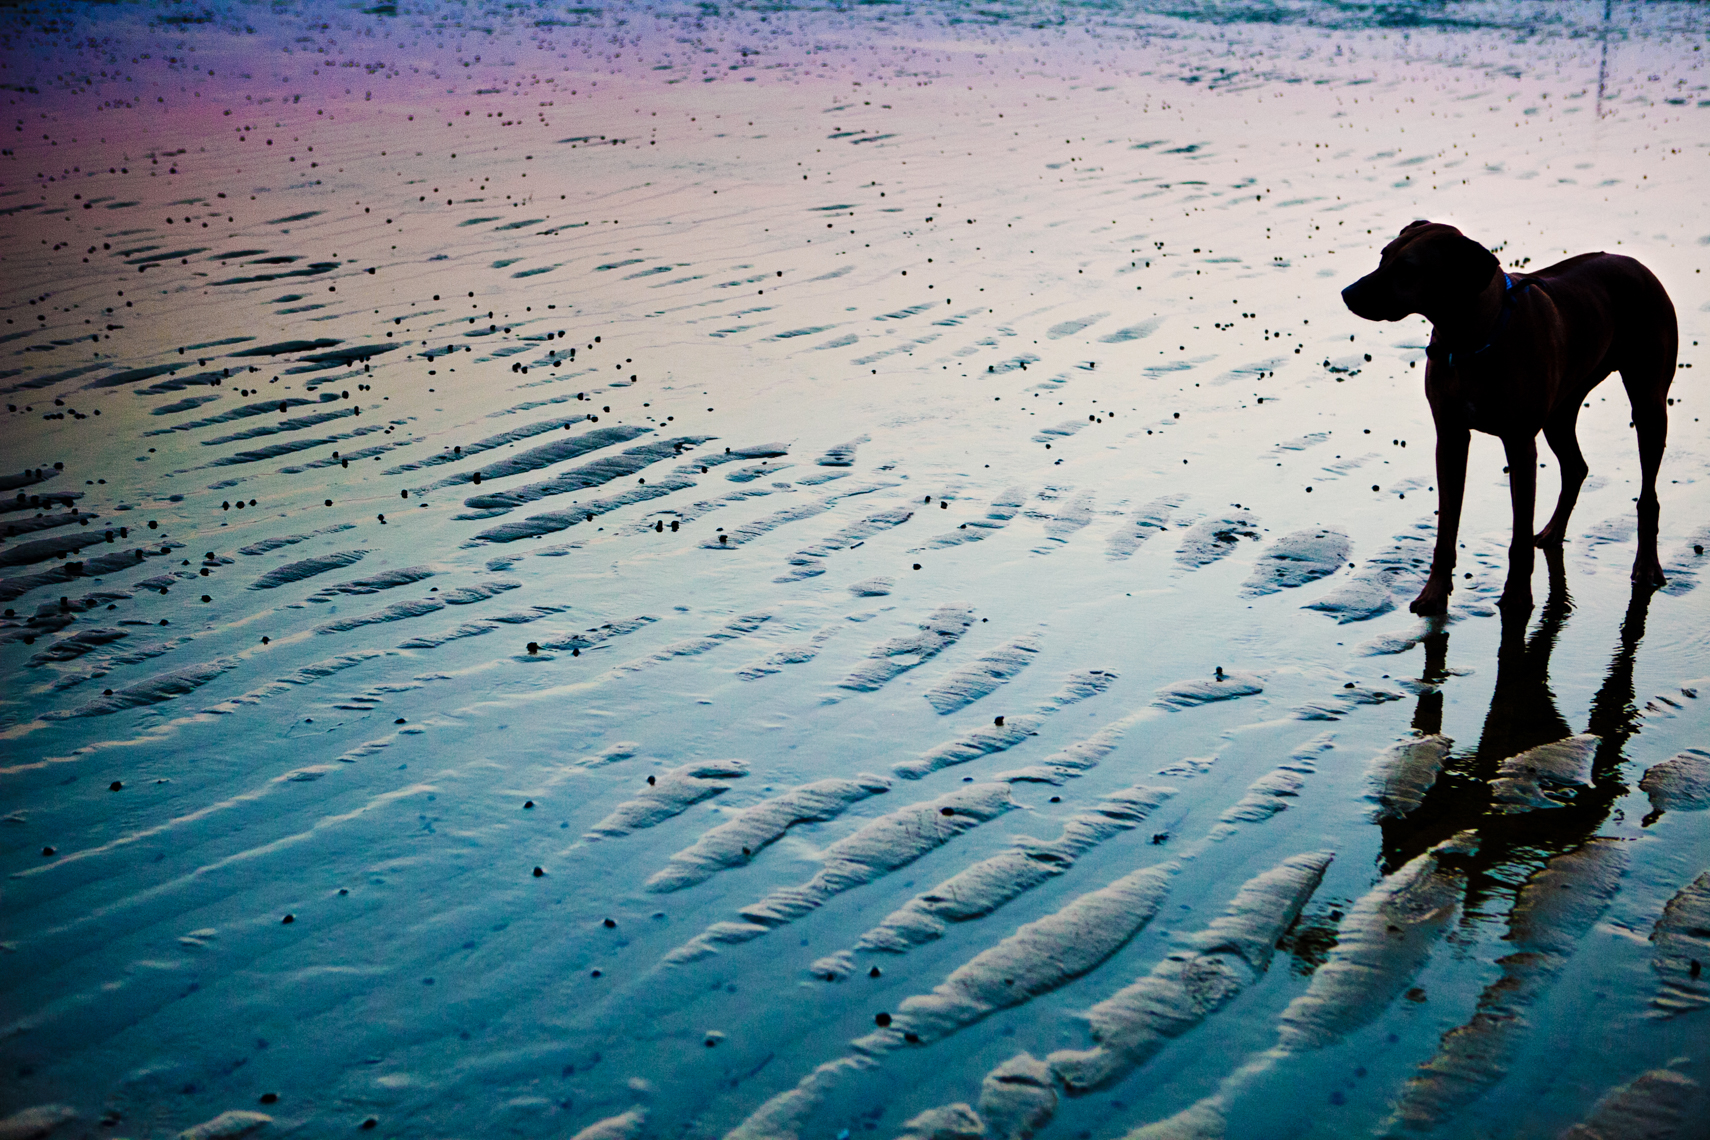 Sunset silhouette portrait of a dog on a beach during low tide